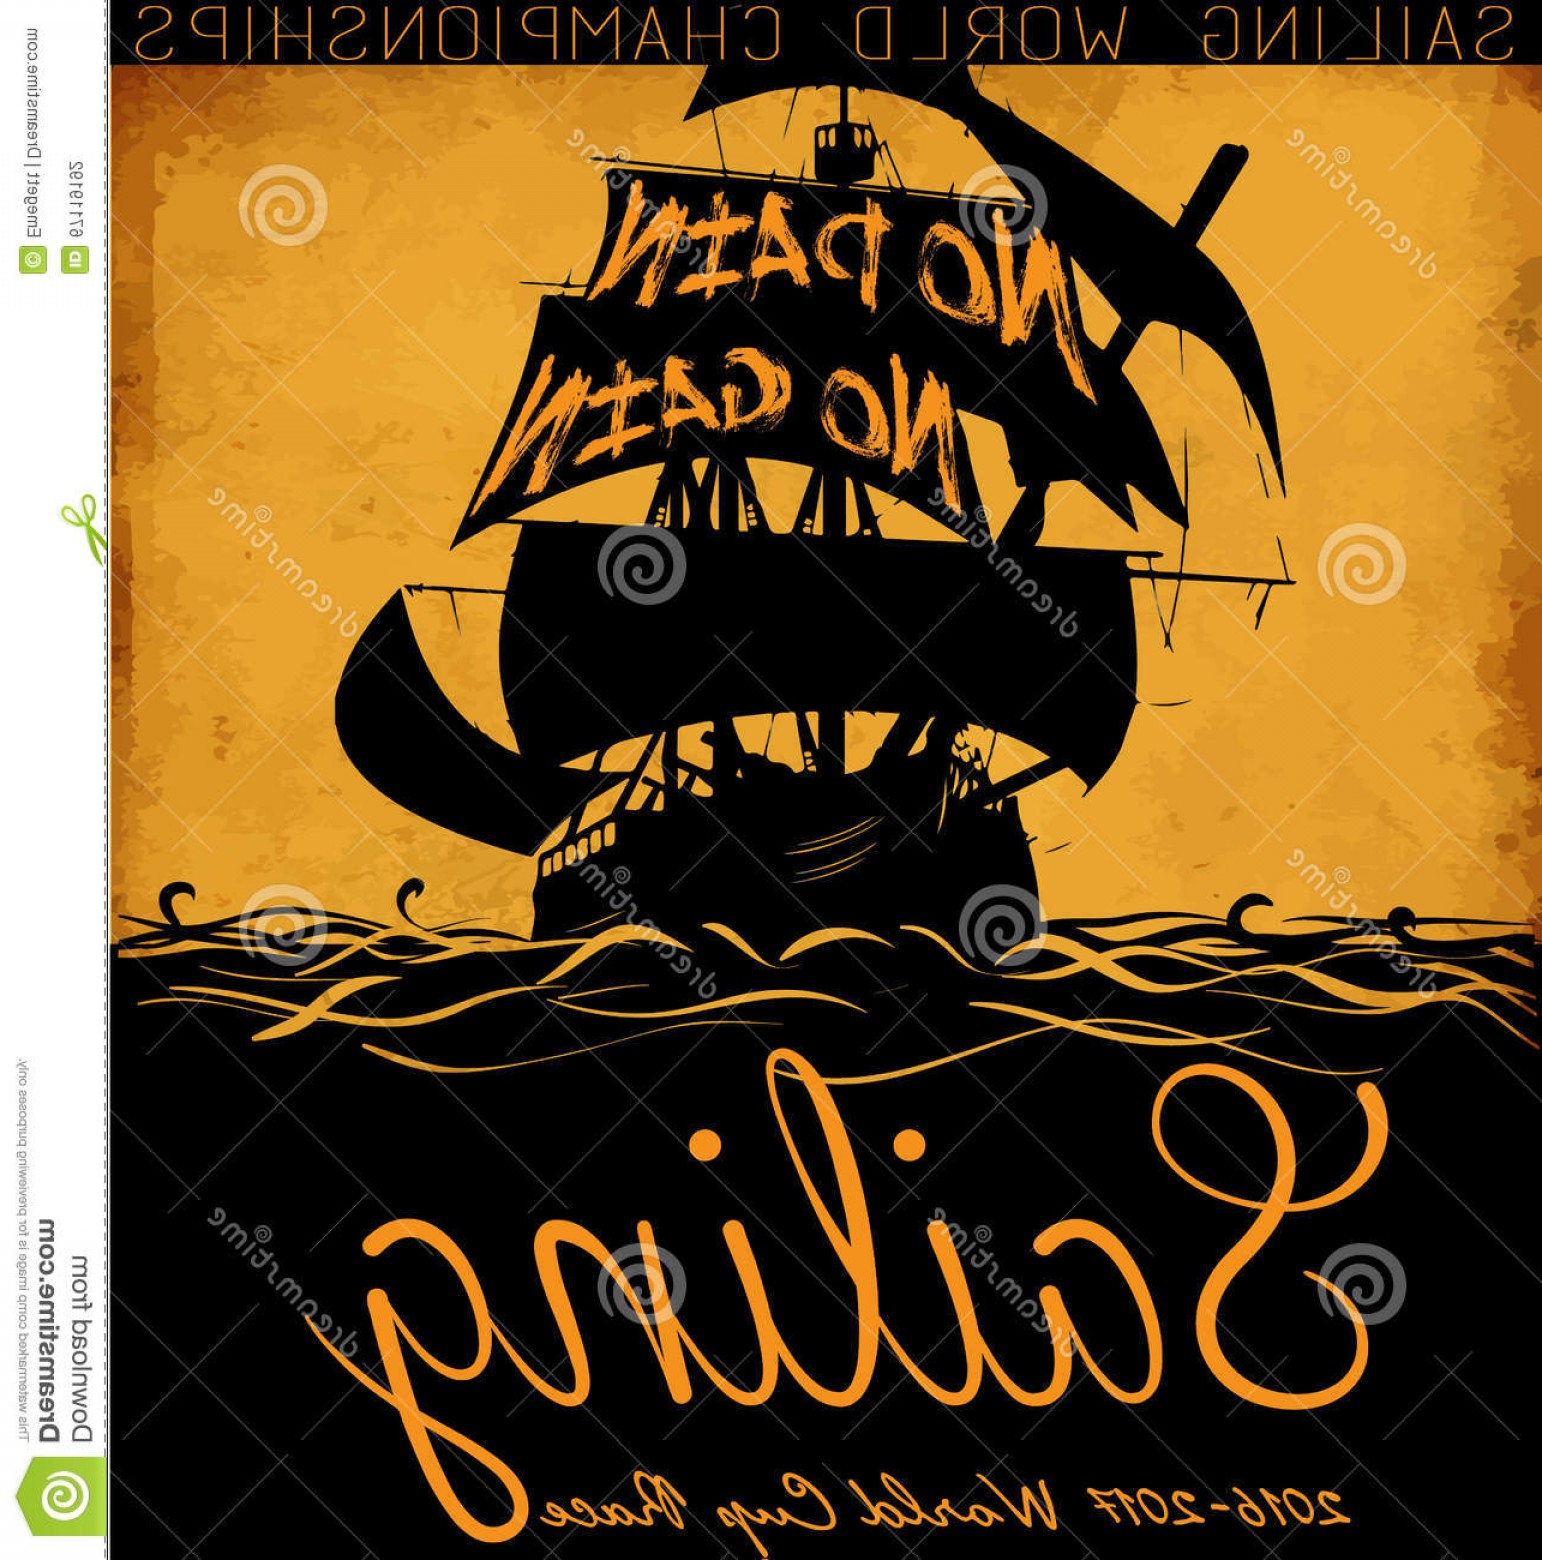 Boat Vector Art Graphics: Stock Illustration Sail Boat Vector Tee Graphic Design Fashion Style Image